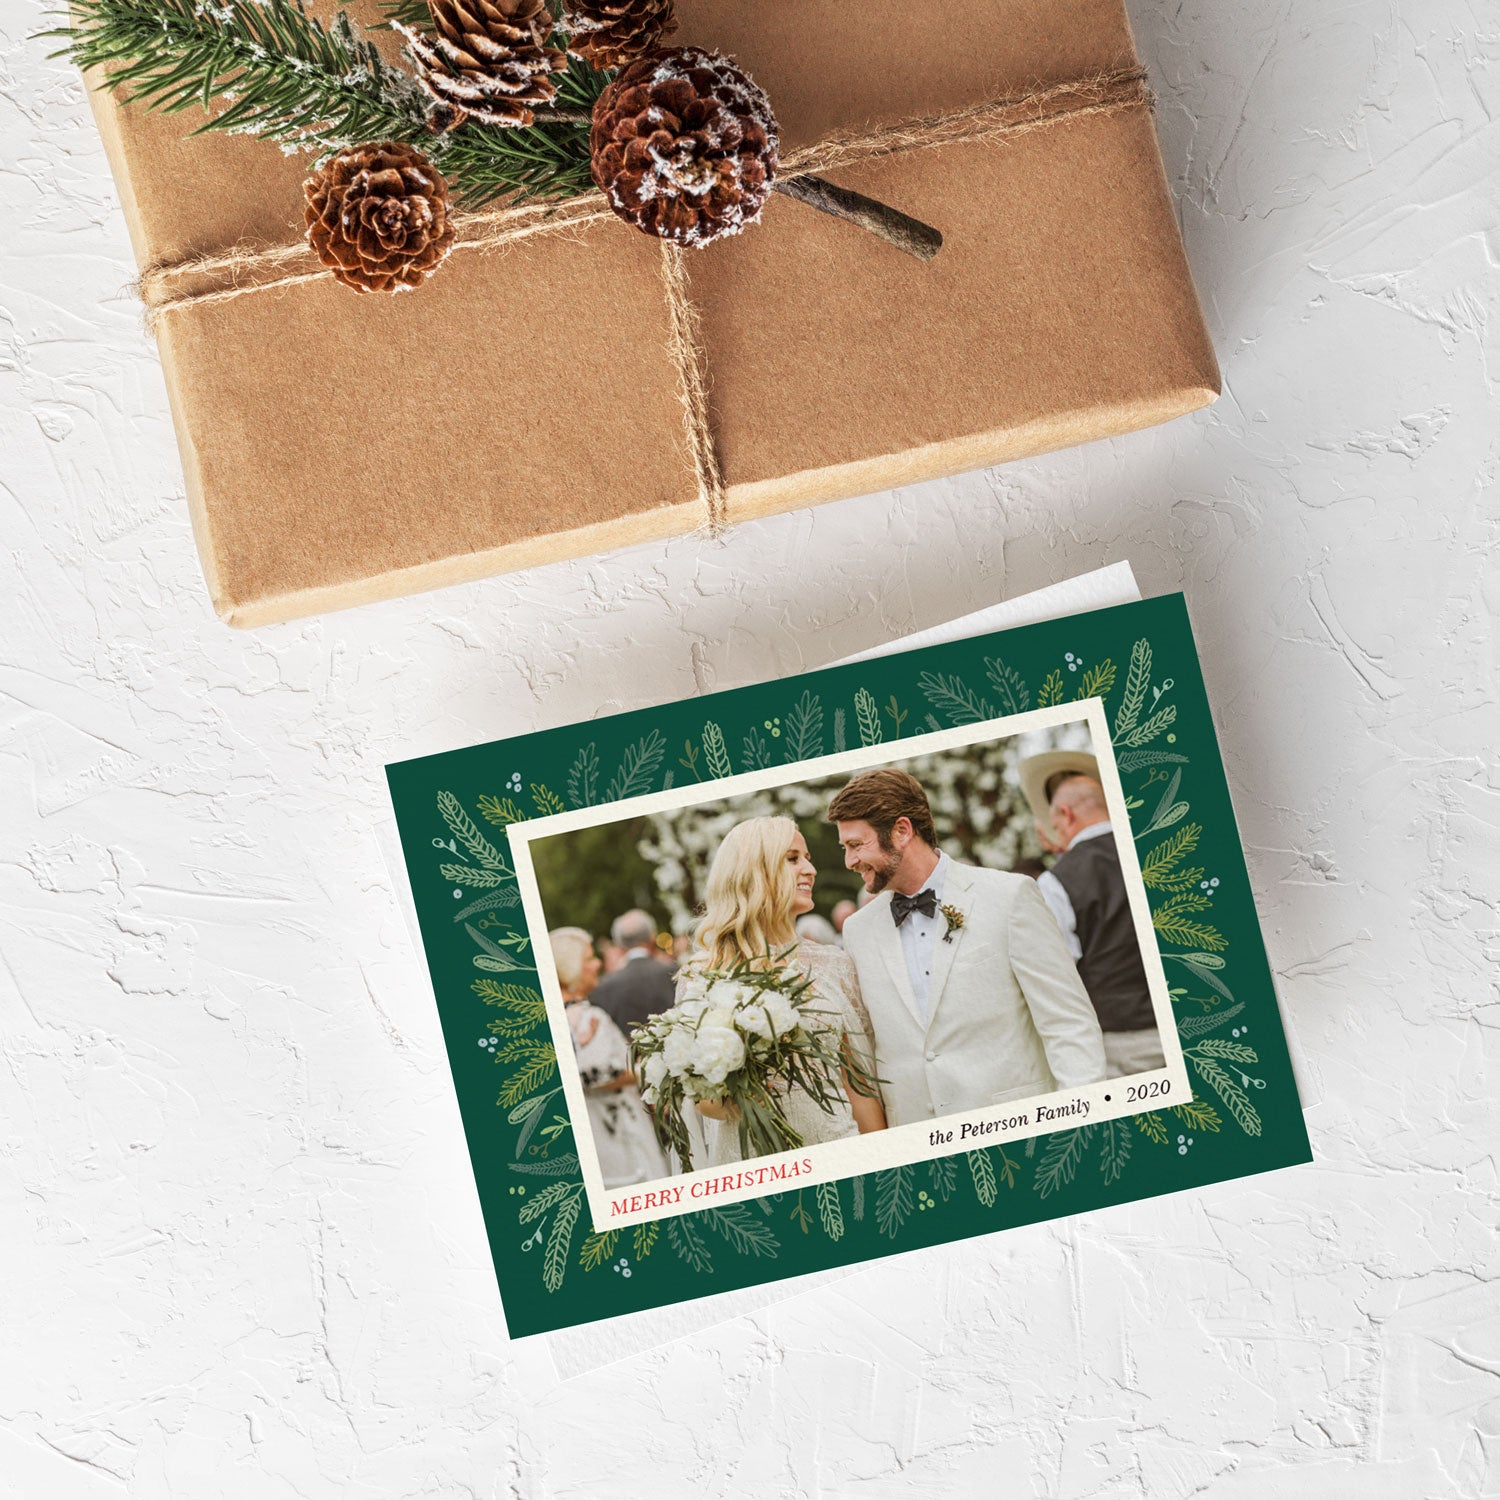 Sprigs of Pine Green christmas photo card by Erika Firm for Photo Affections 2019